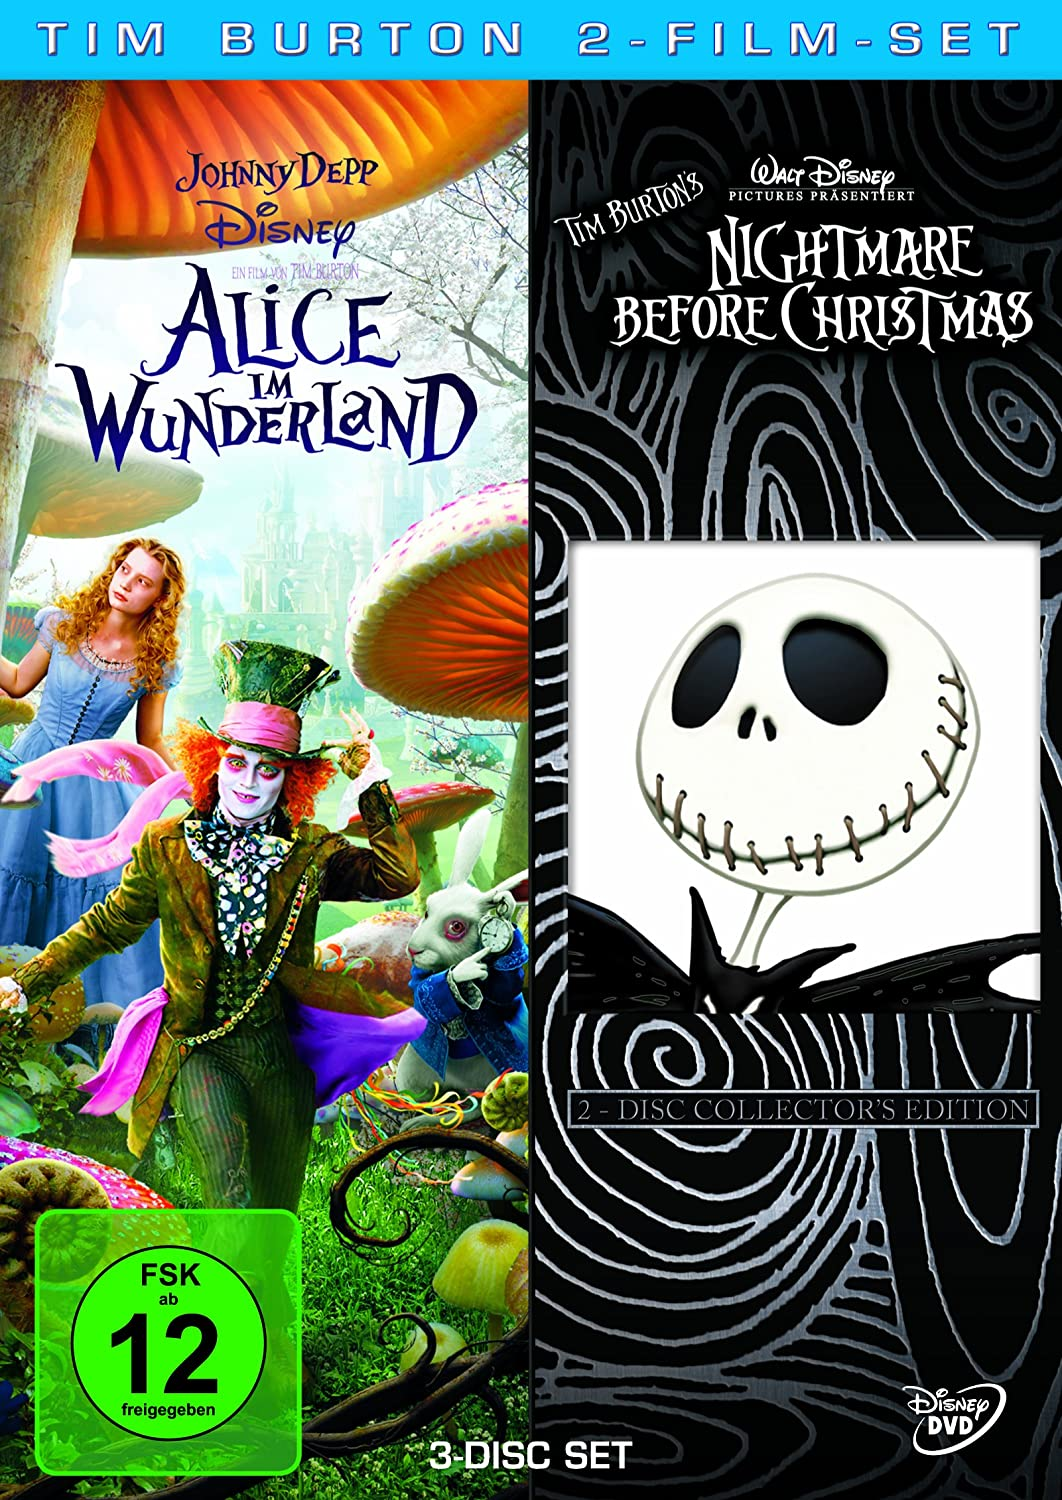 Tim Burton 2-Film-Set [Alemania] [DVD]: Amazon.es: Mia Wasikowska ...